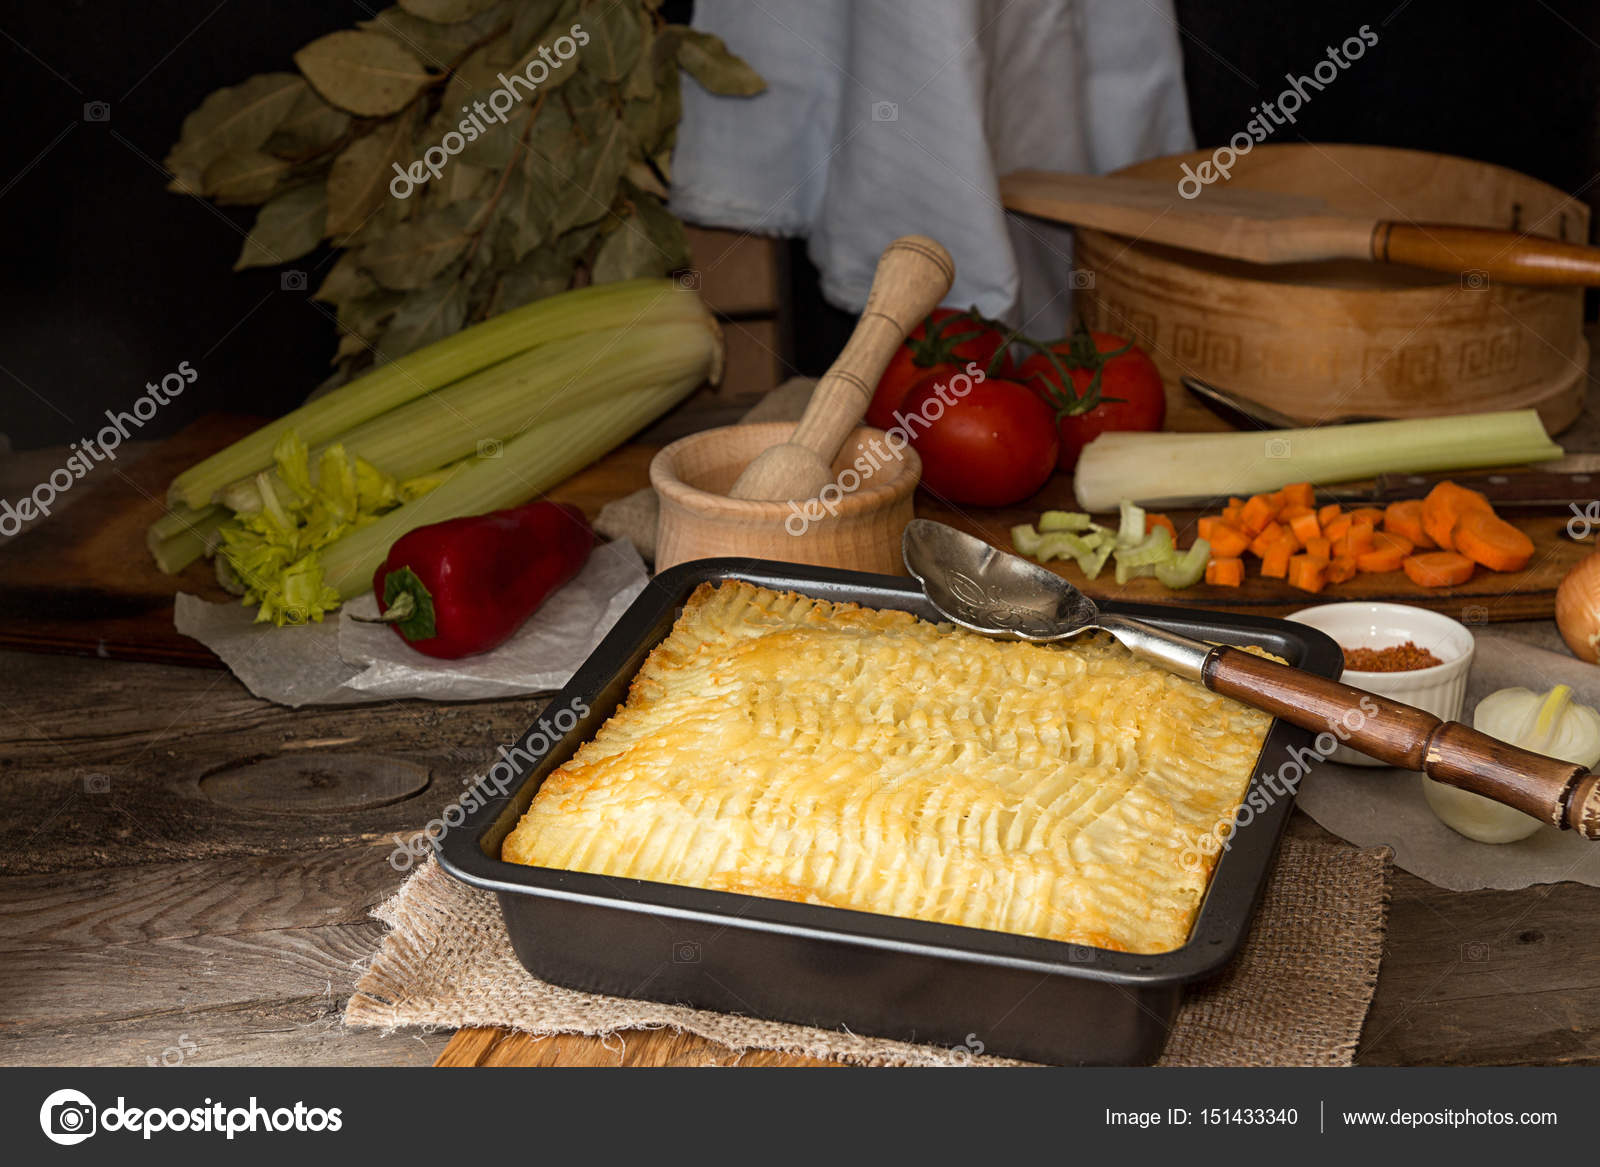 Shepherd\u0027s pie traditional english dish. Pie on plate. Recipe with minced beef lamb carrot onion celery mashed potato baked in casserole. Rustic style. & Shepherd\u0027s pie traditional english dish. Recipe with minced beef ...